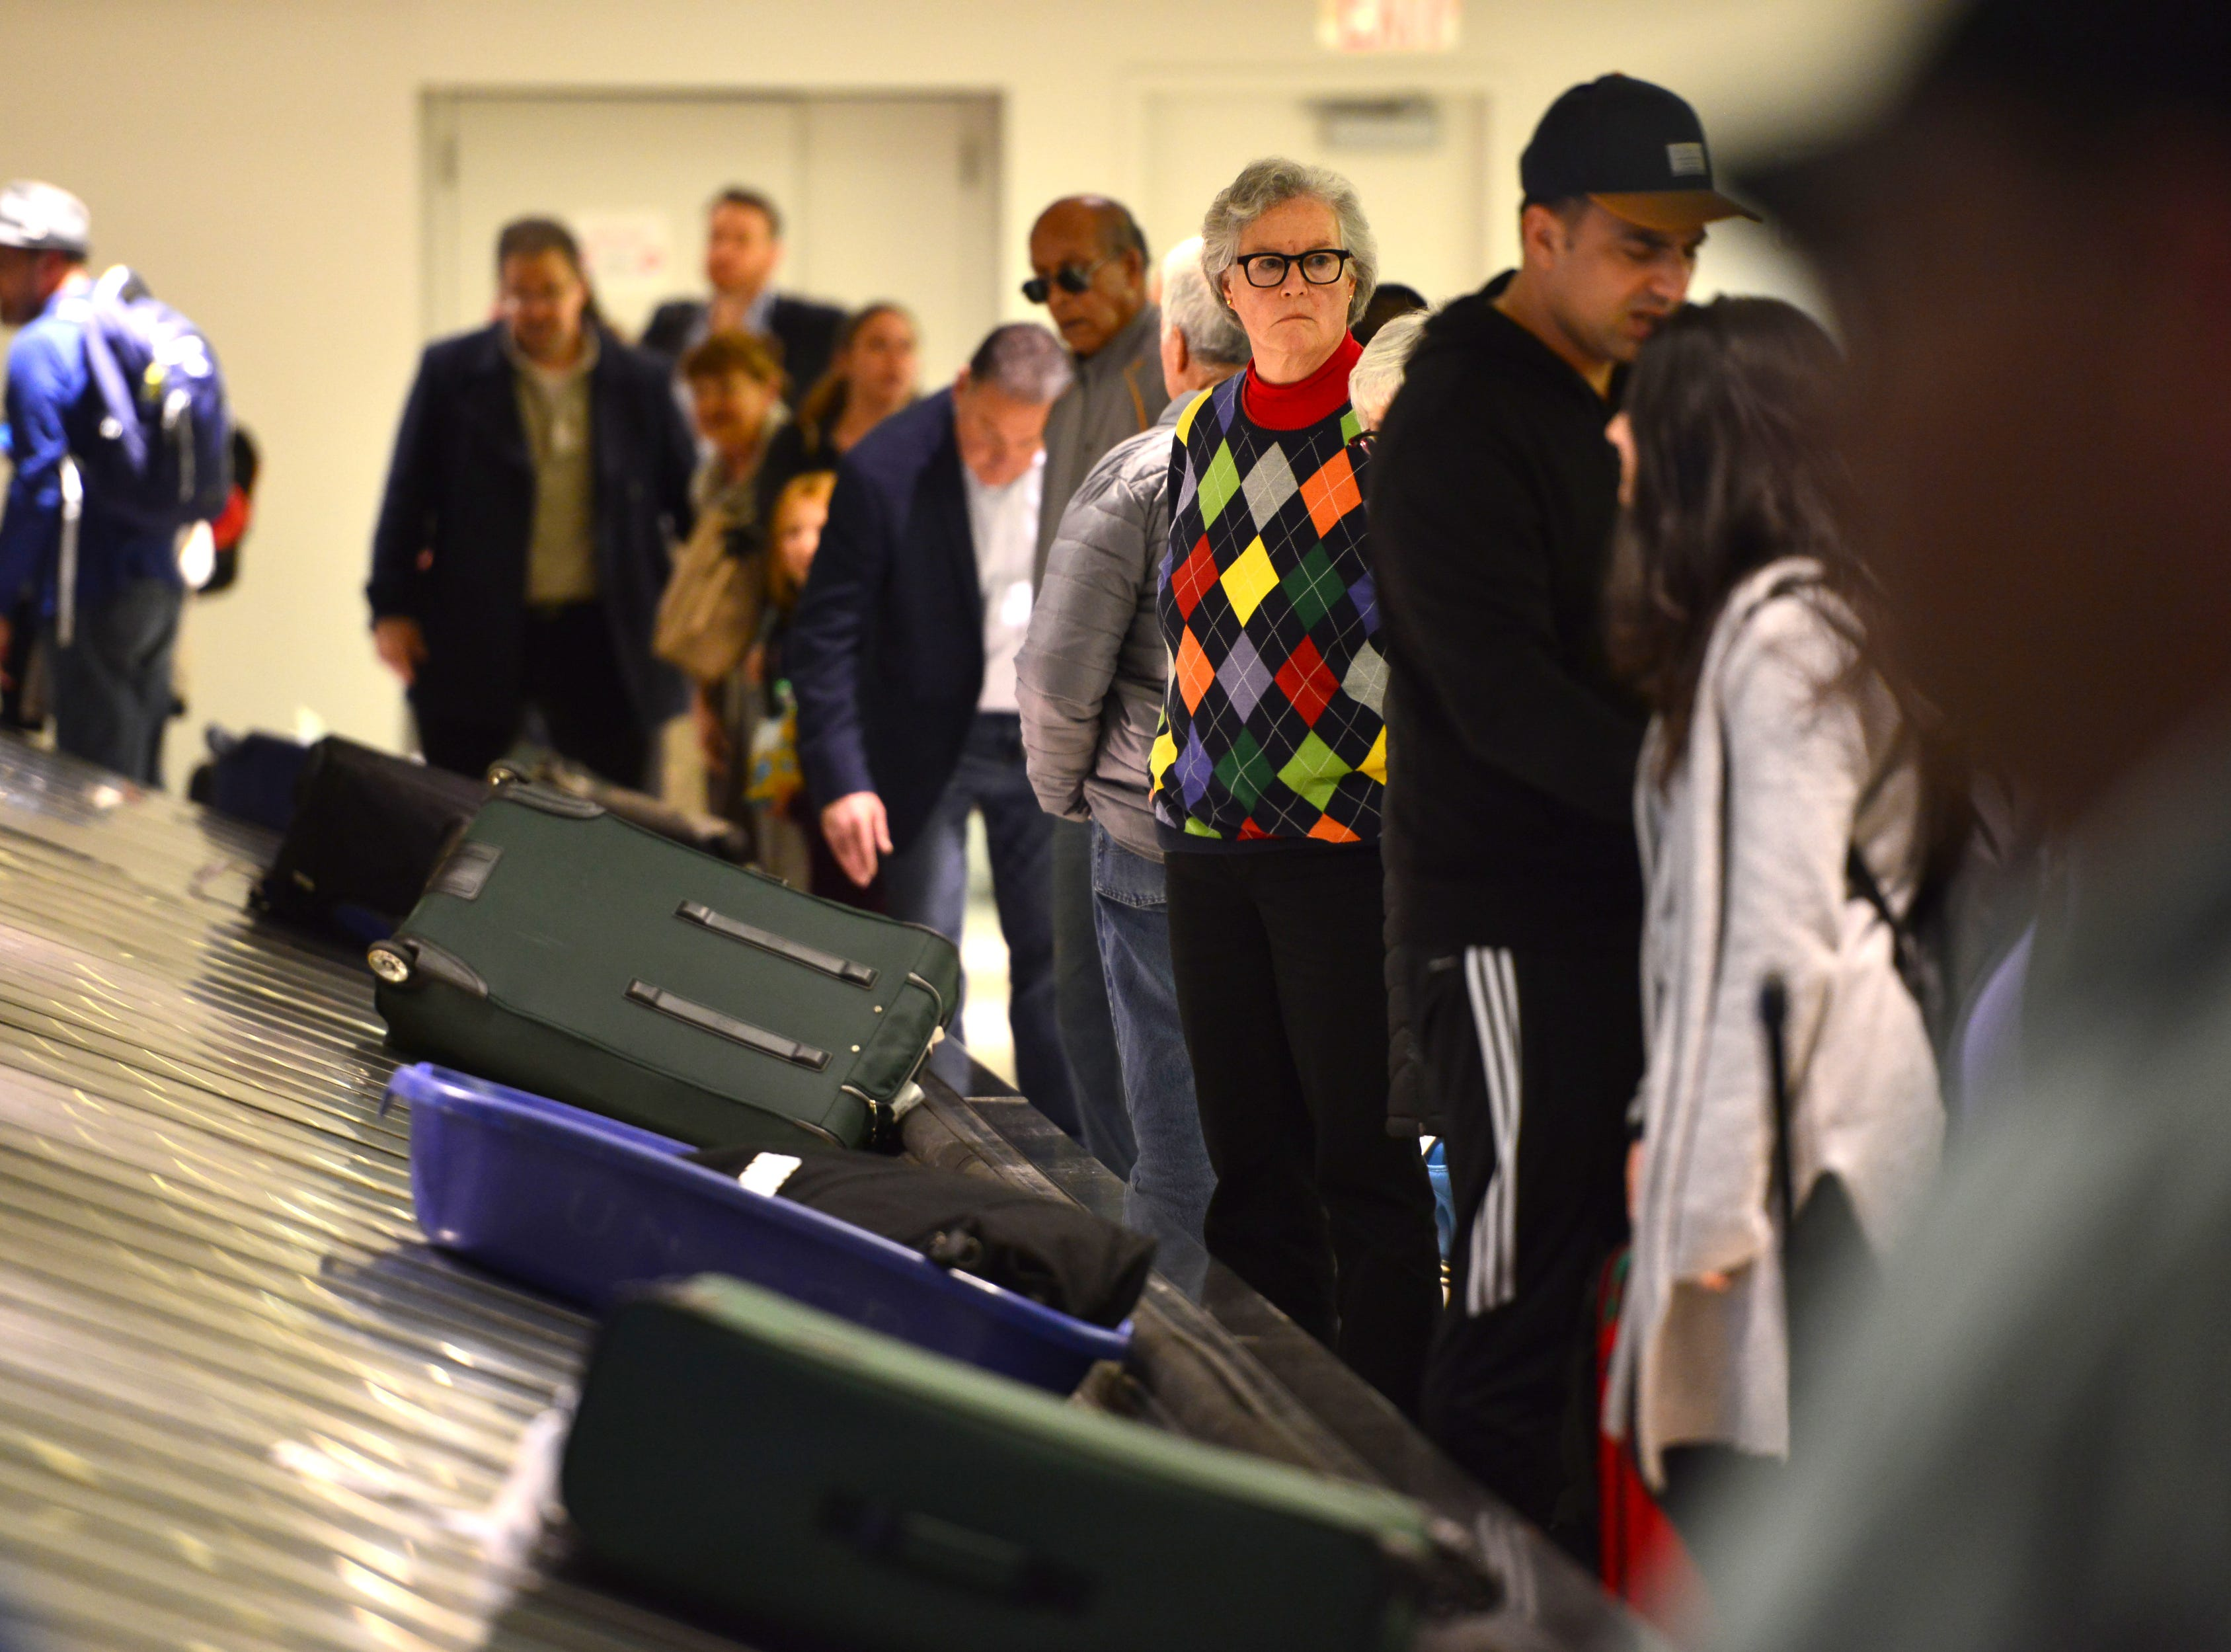 Travelers wait for their luggage at Terminal C at Newark Airport. Some traveller experienced the effects of the Federal shutdown while traveling in and out of the airport in Newark, Friday January 25, 2019.